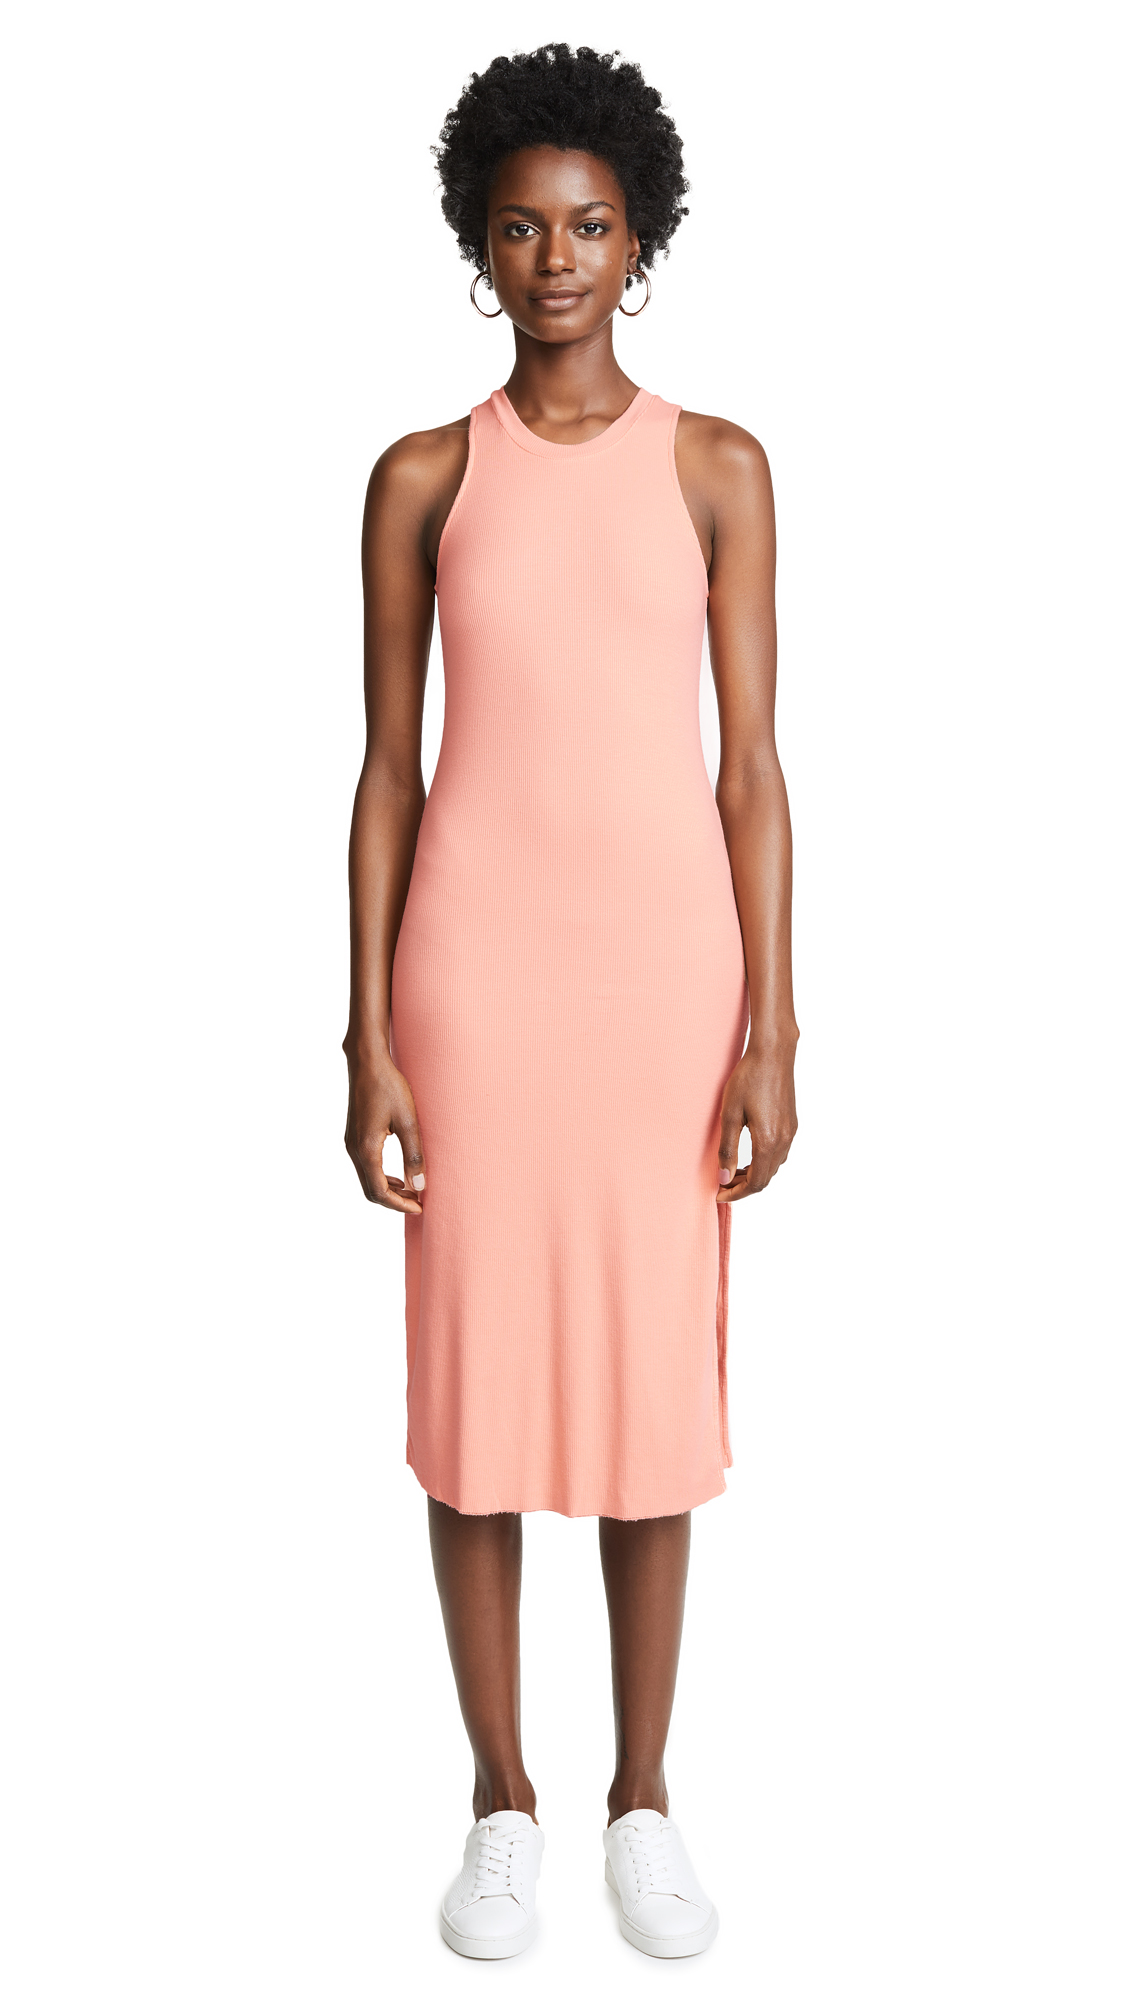 Cotton Citizen The Melbourne Tank Dress with Slit - Pastel Coral